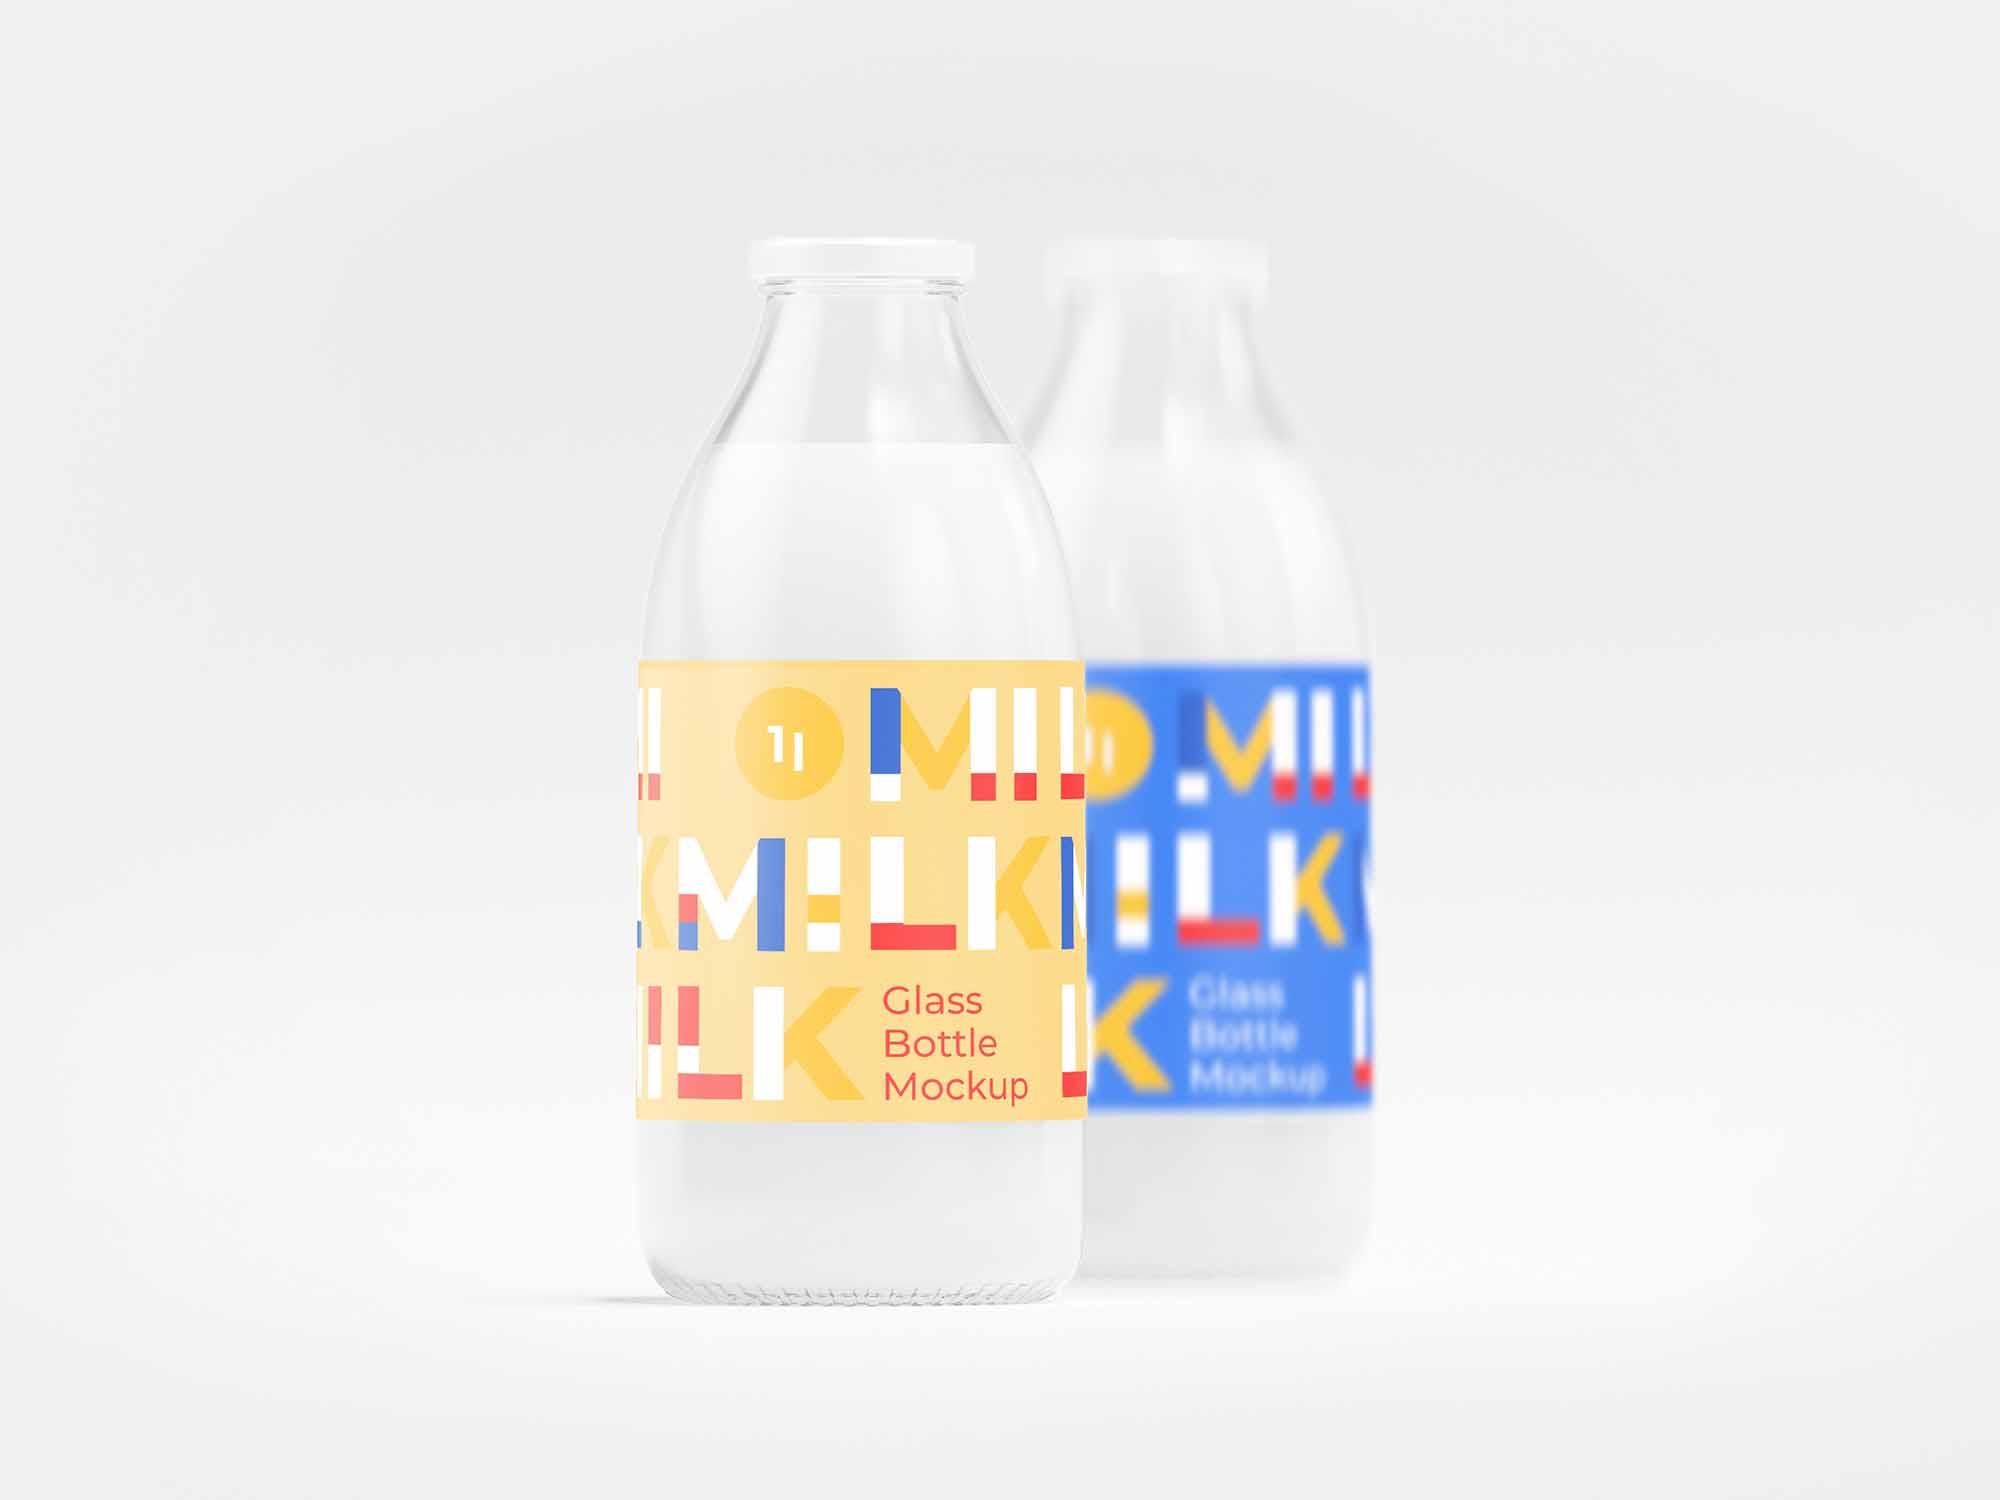 Milk Bottle Mockup 2